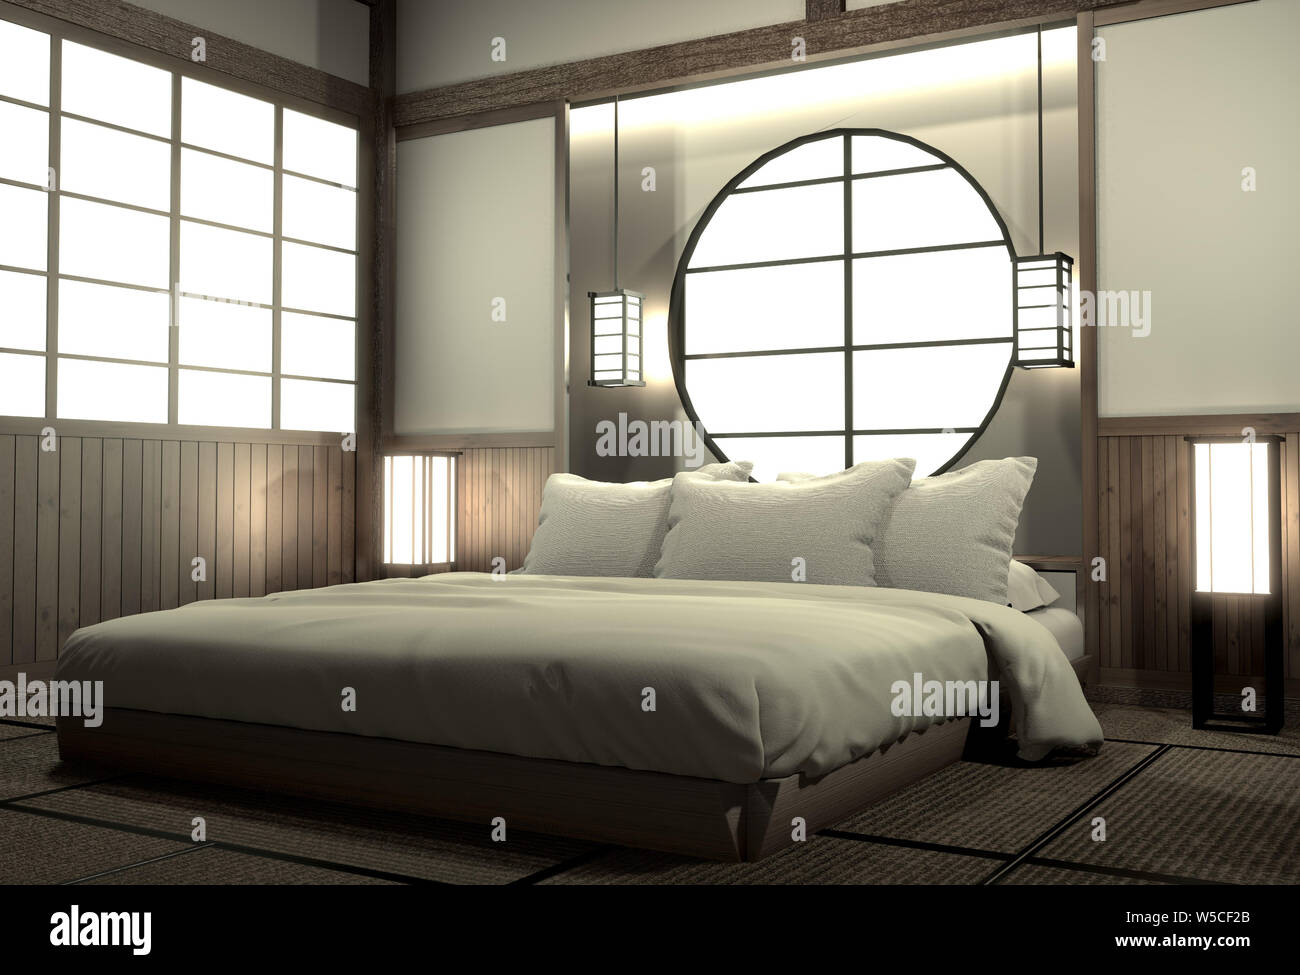 Bedroom Modern Zen Interior Design With Decoration Japanese Style 3d Rendering Stock Photo Alamy